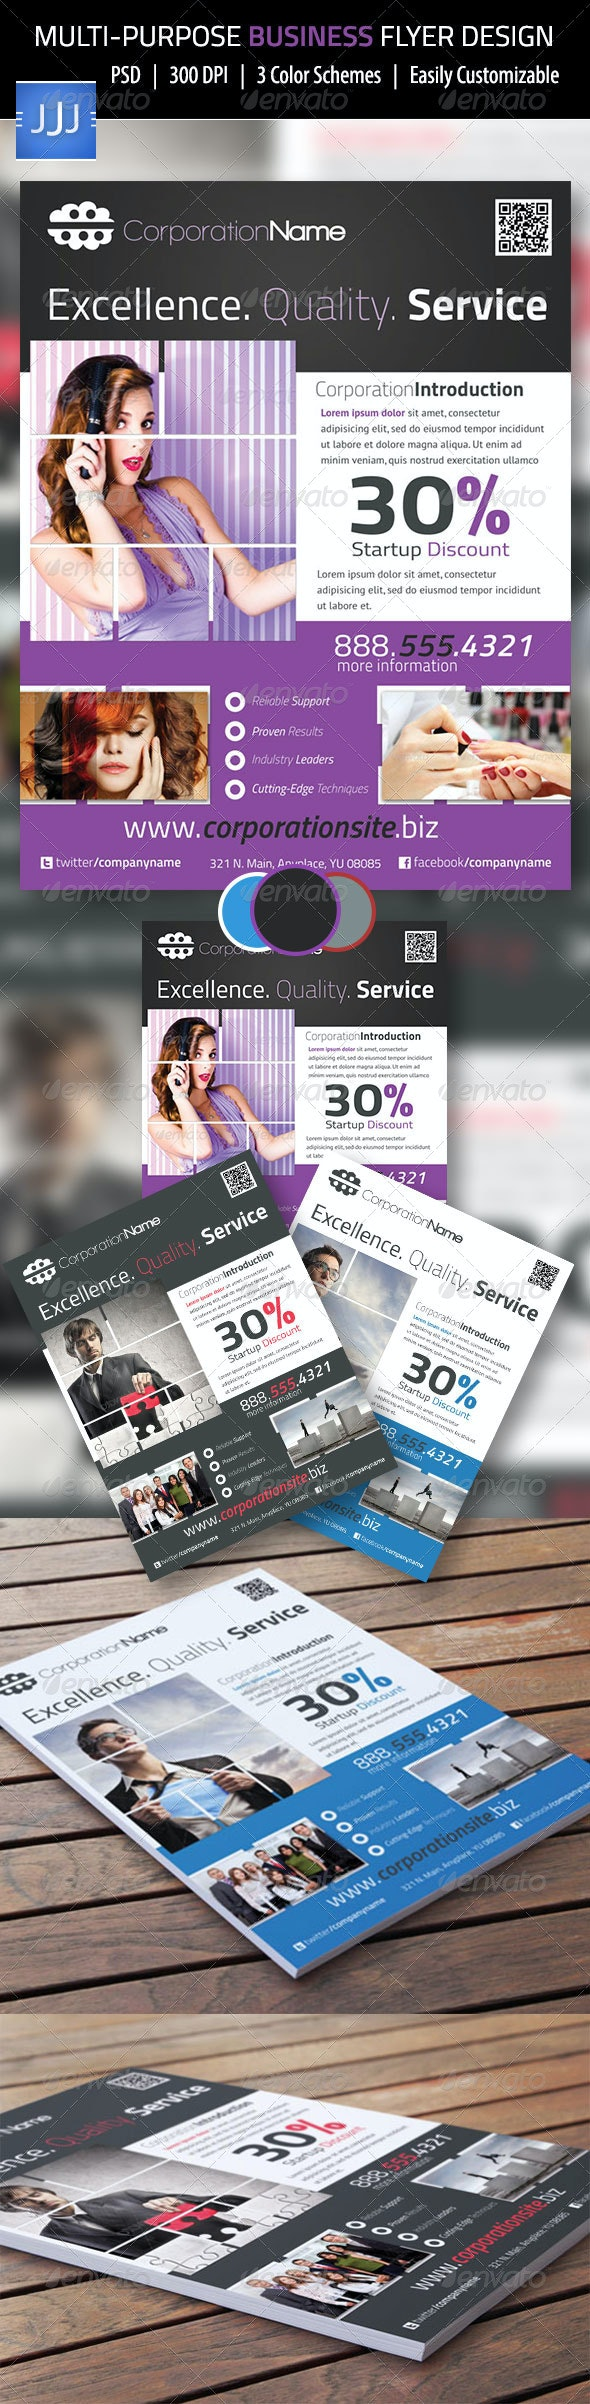 Multipurpose Business Flyer 16 - Corporate Flyers